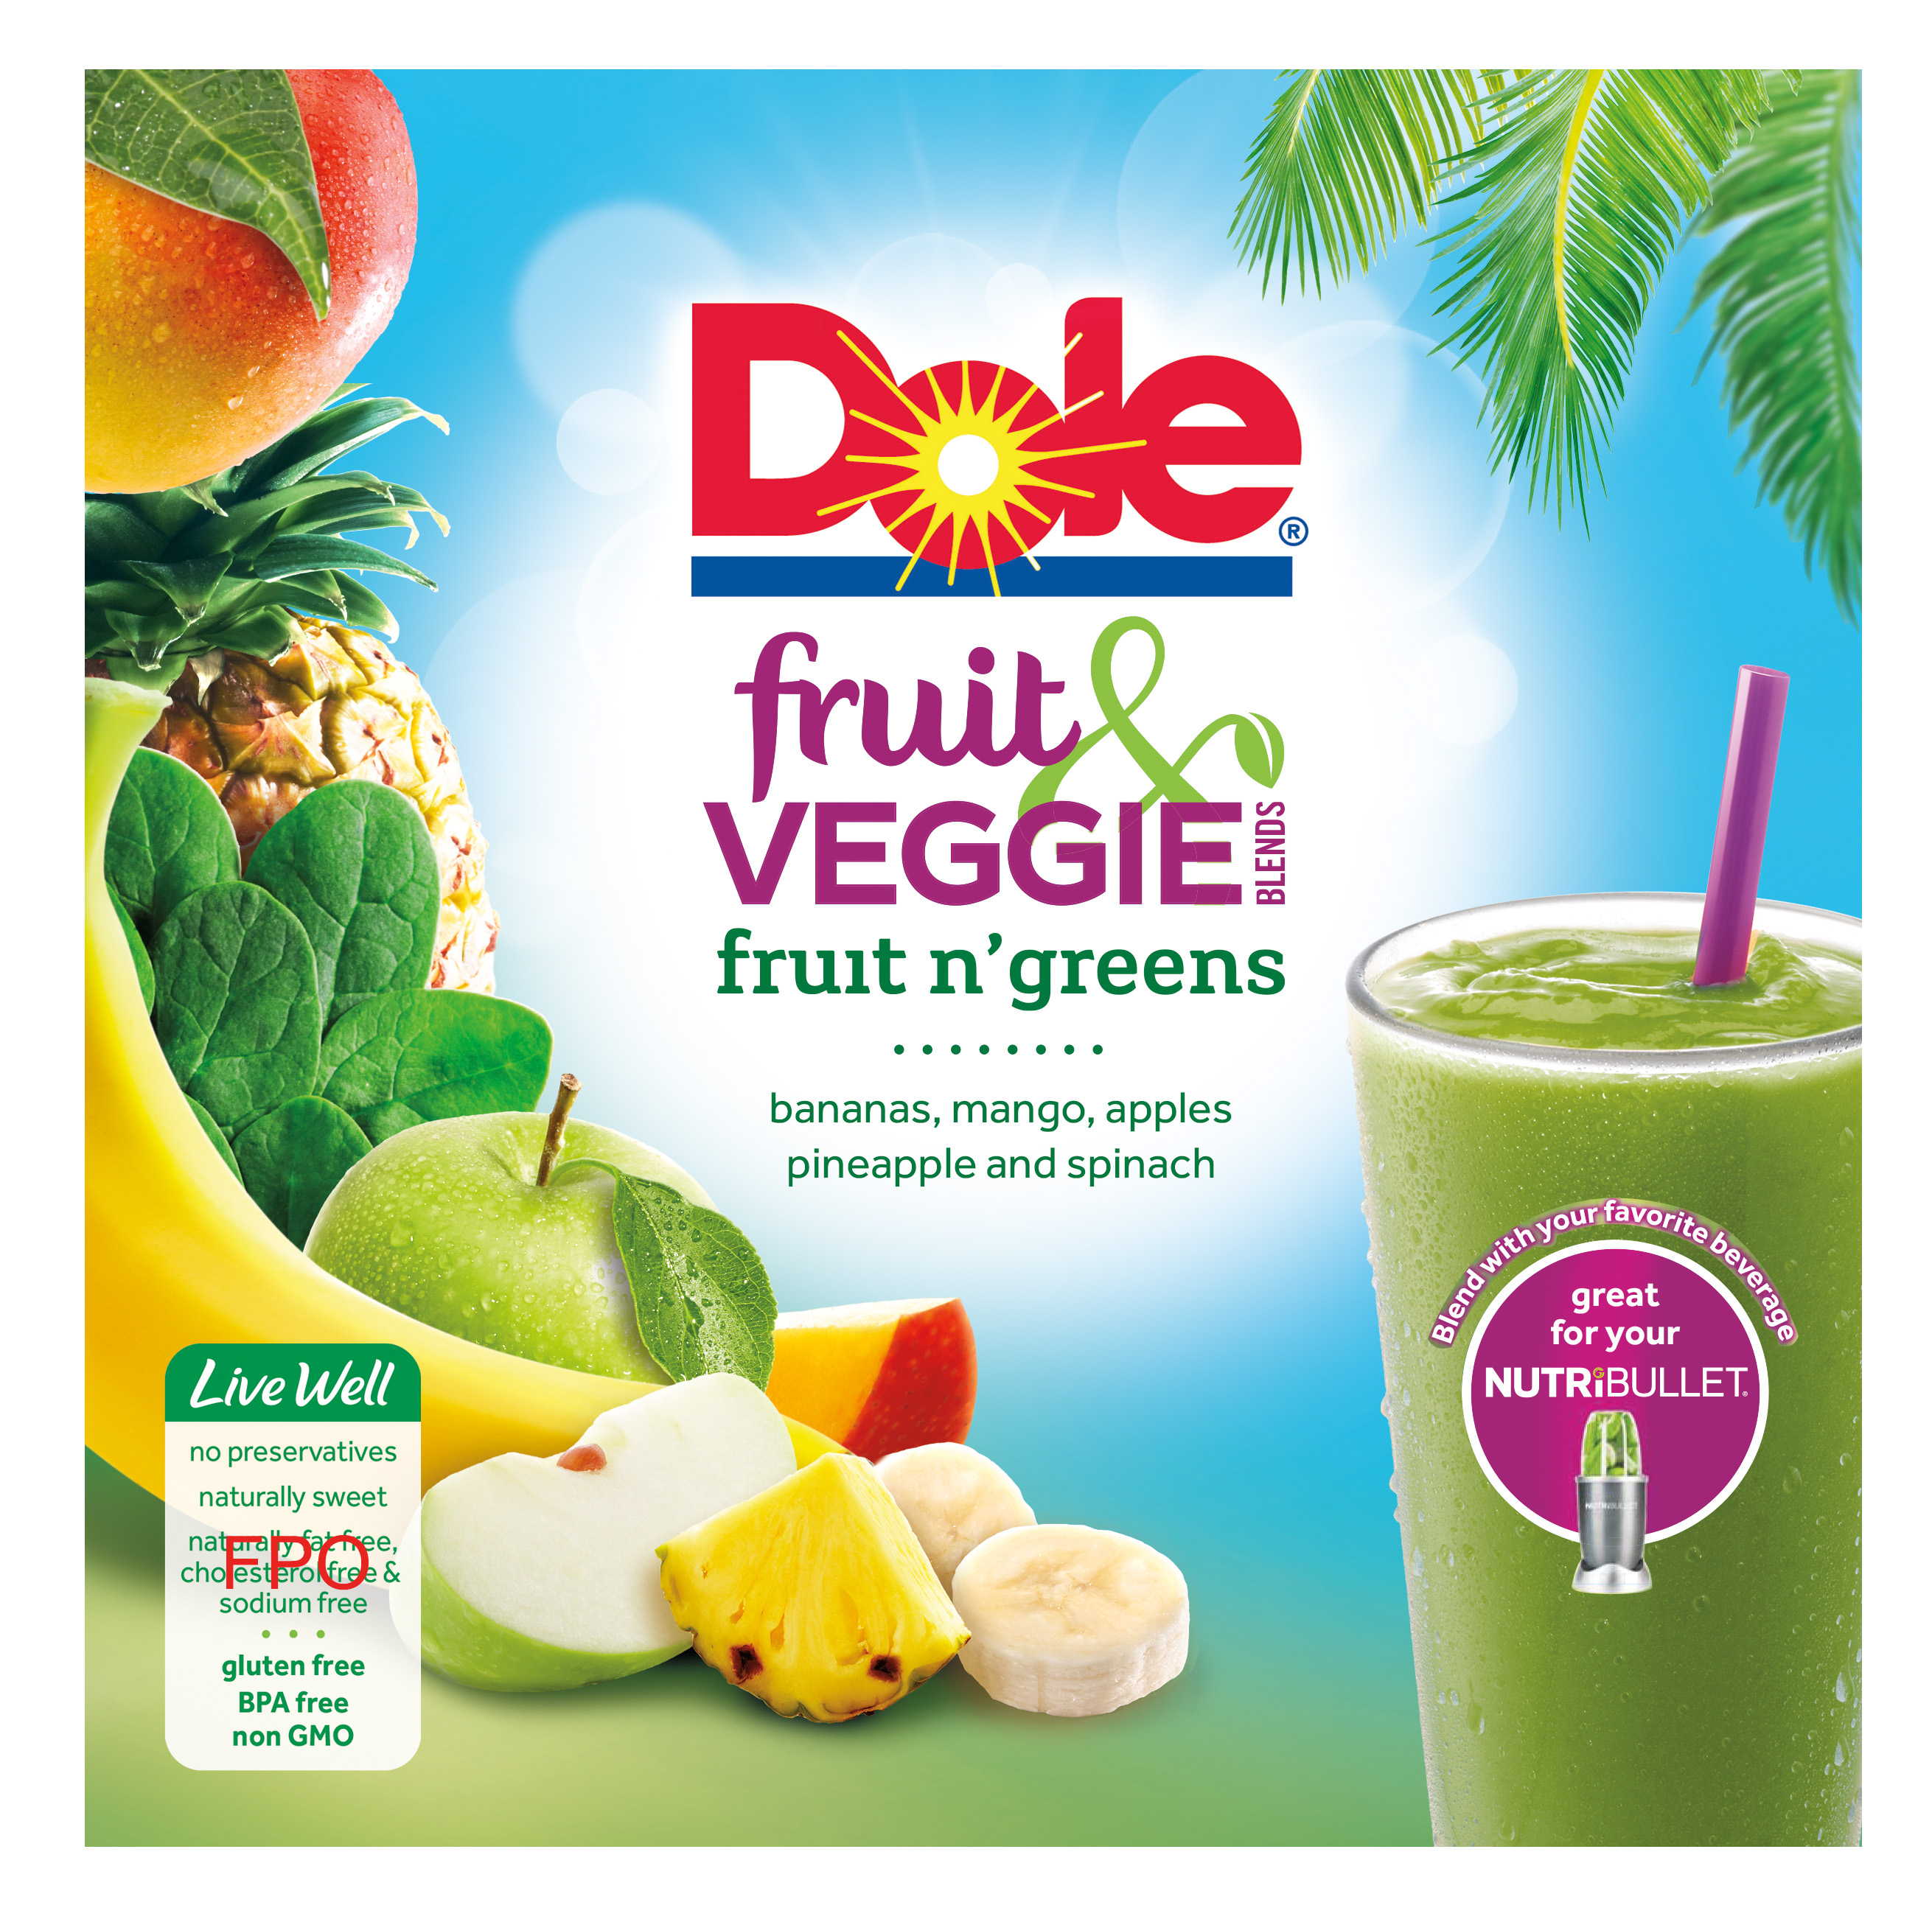 Dole Fruit and Veggie Blends Fruit n Greens Layout CMYK F1